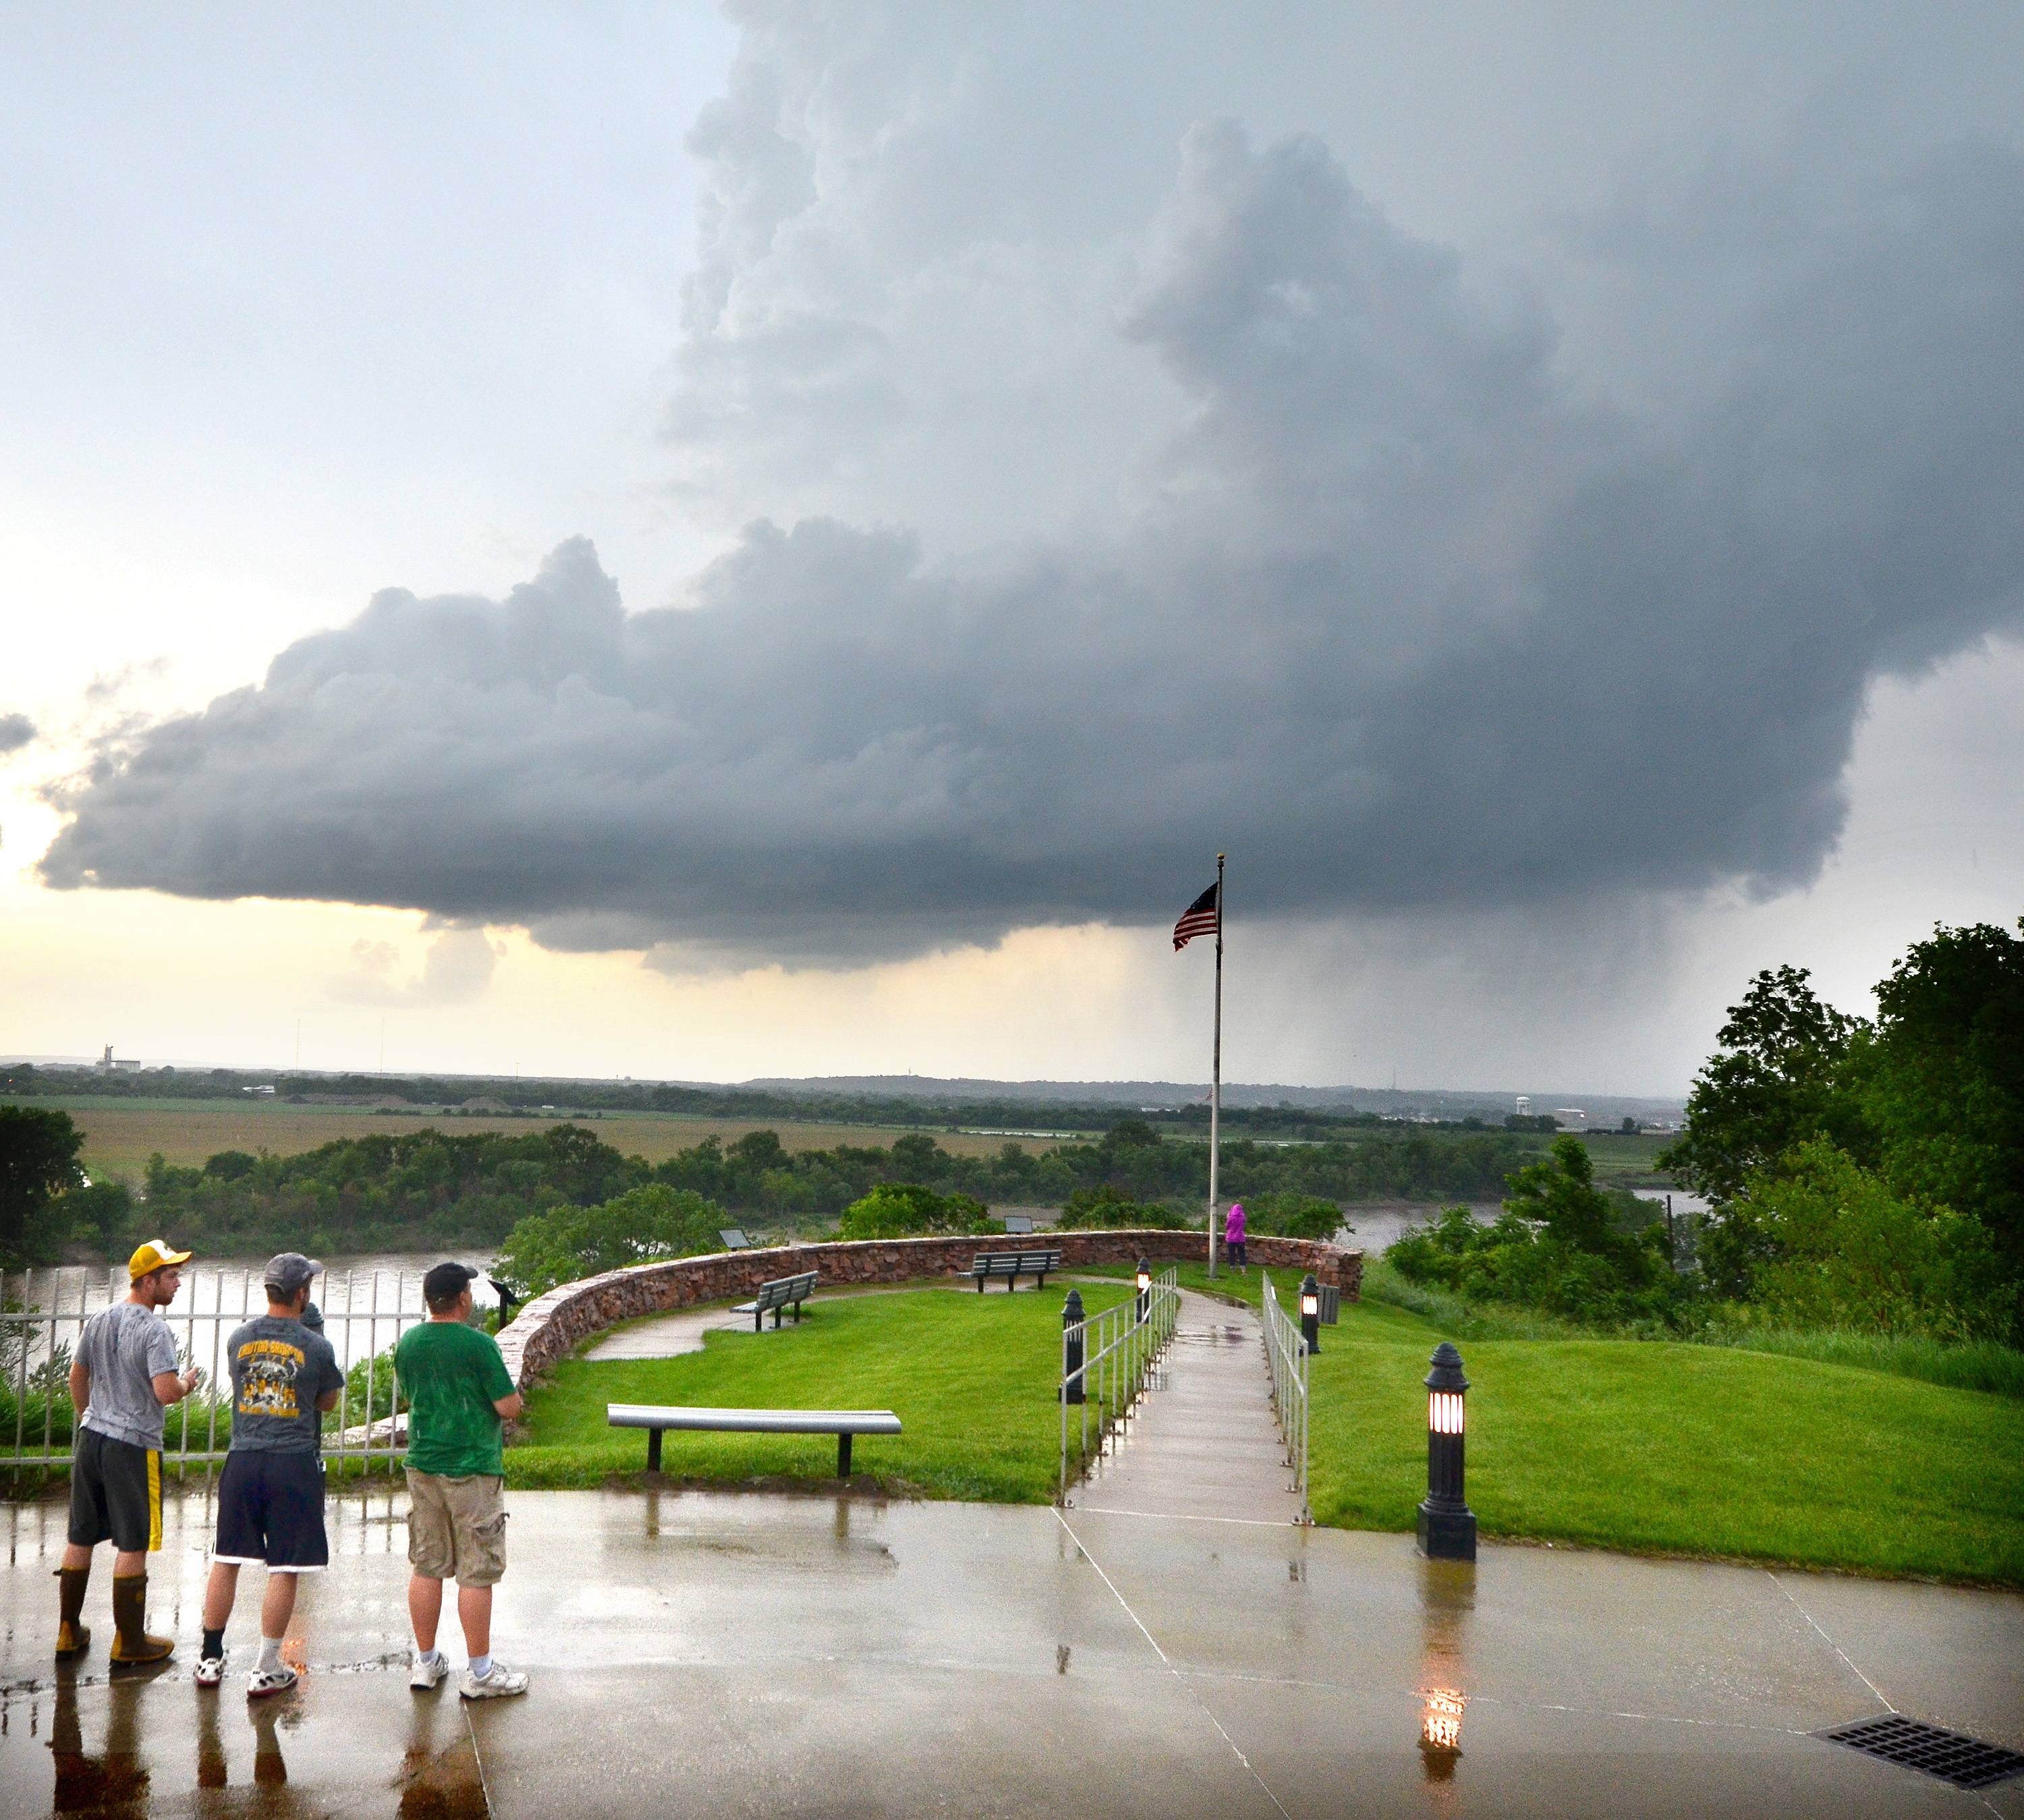 Onlookers standing at the Sgt. Floyd Monument in Sioux City, Iowa, watch as a storm cell passes over the city Monday, June 16, 2014. Storms were even worse Monday in Nebraska, where tornadoes killed at least 1 person.